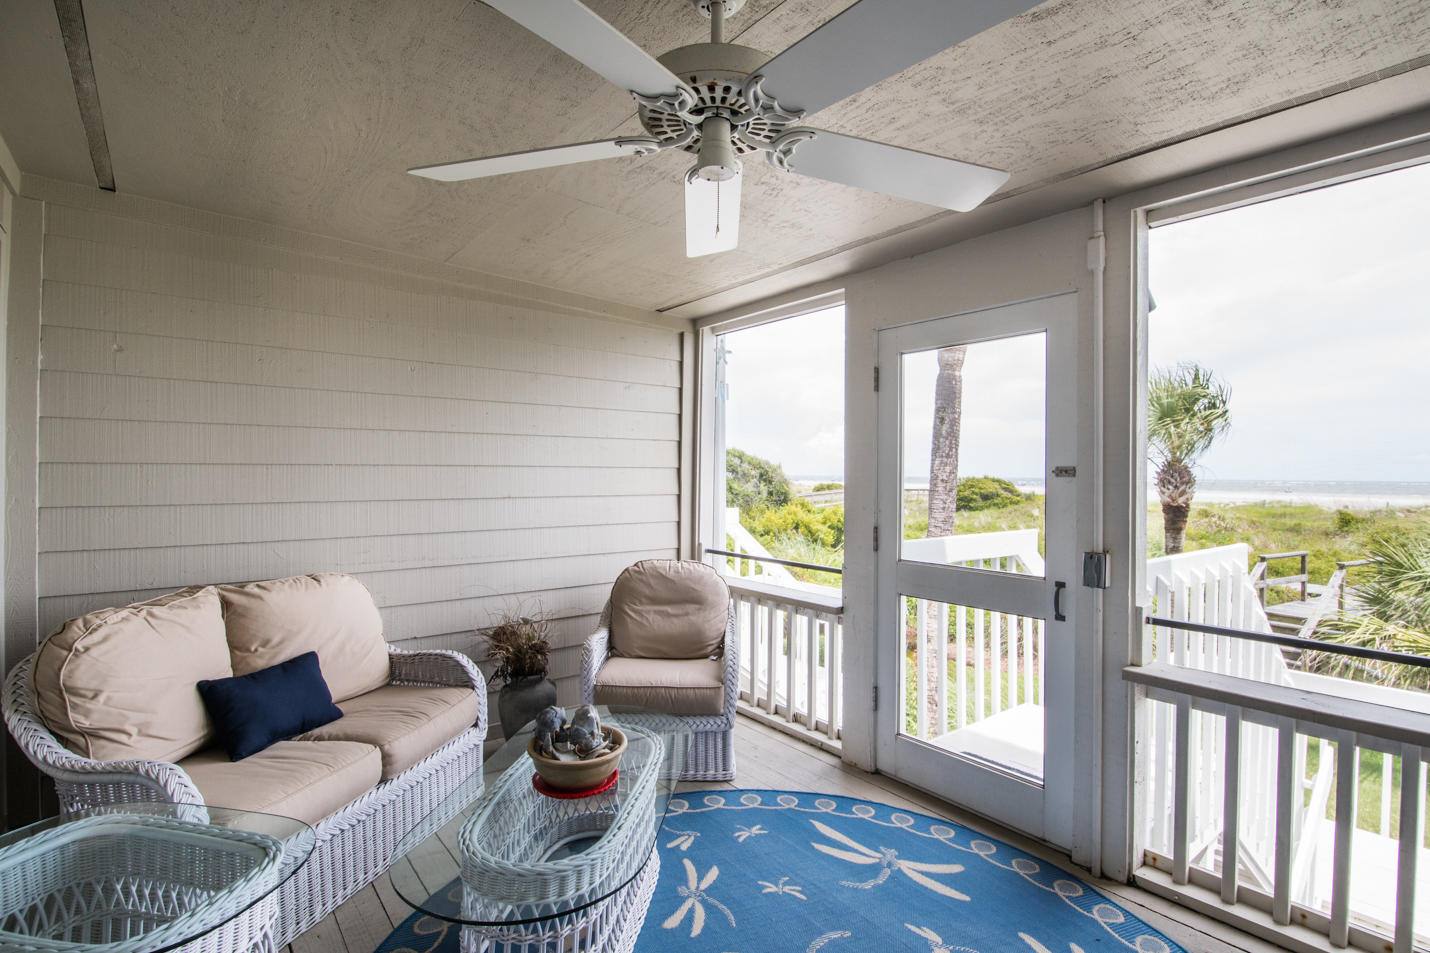 Beach Club Villas Homes For Sale - 66 Beach Club Villas, Isle of Palms, SC - 26